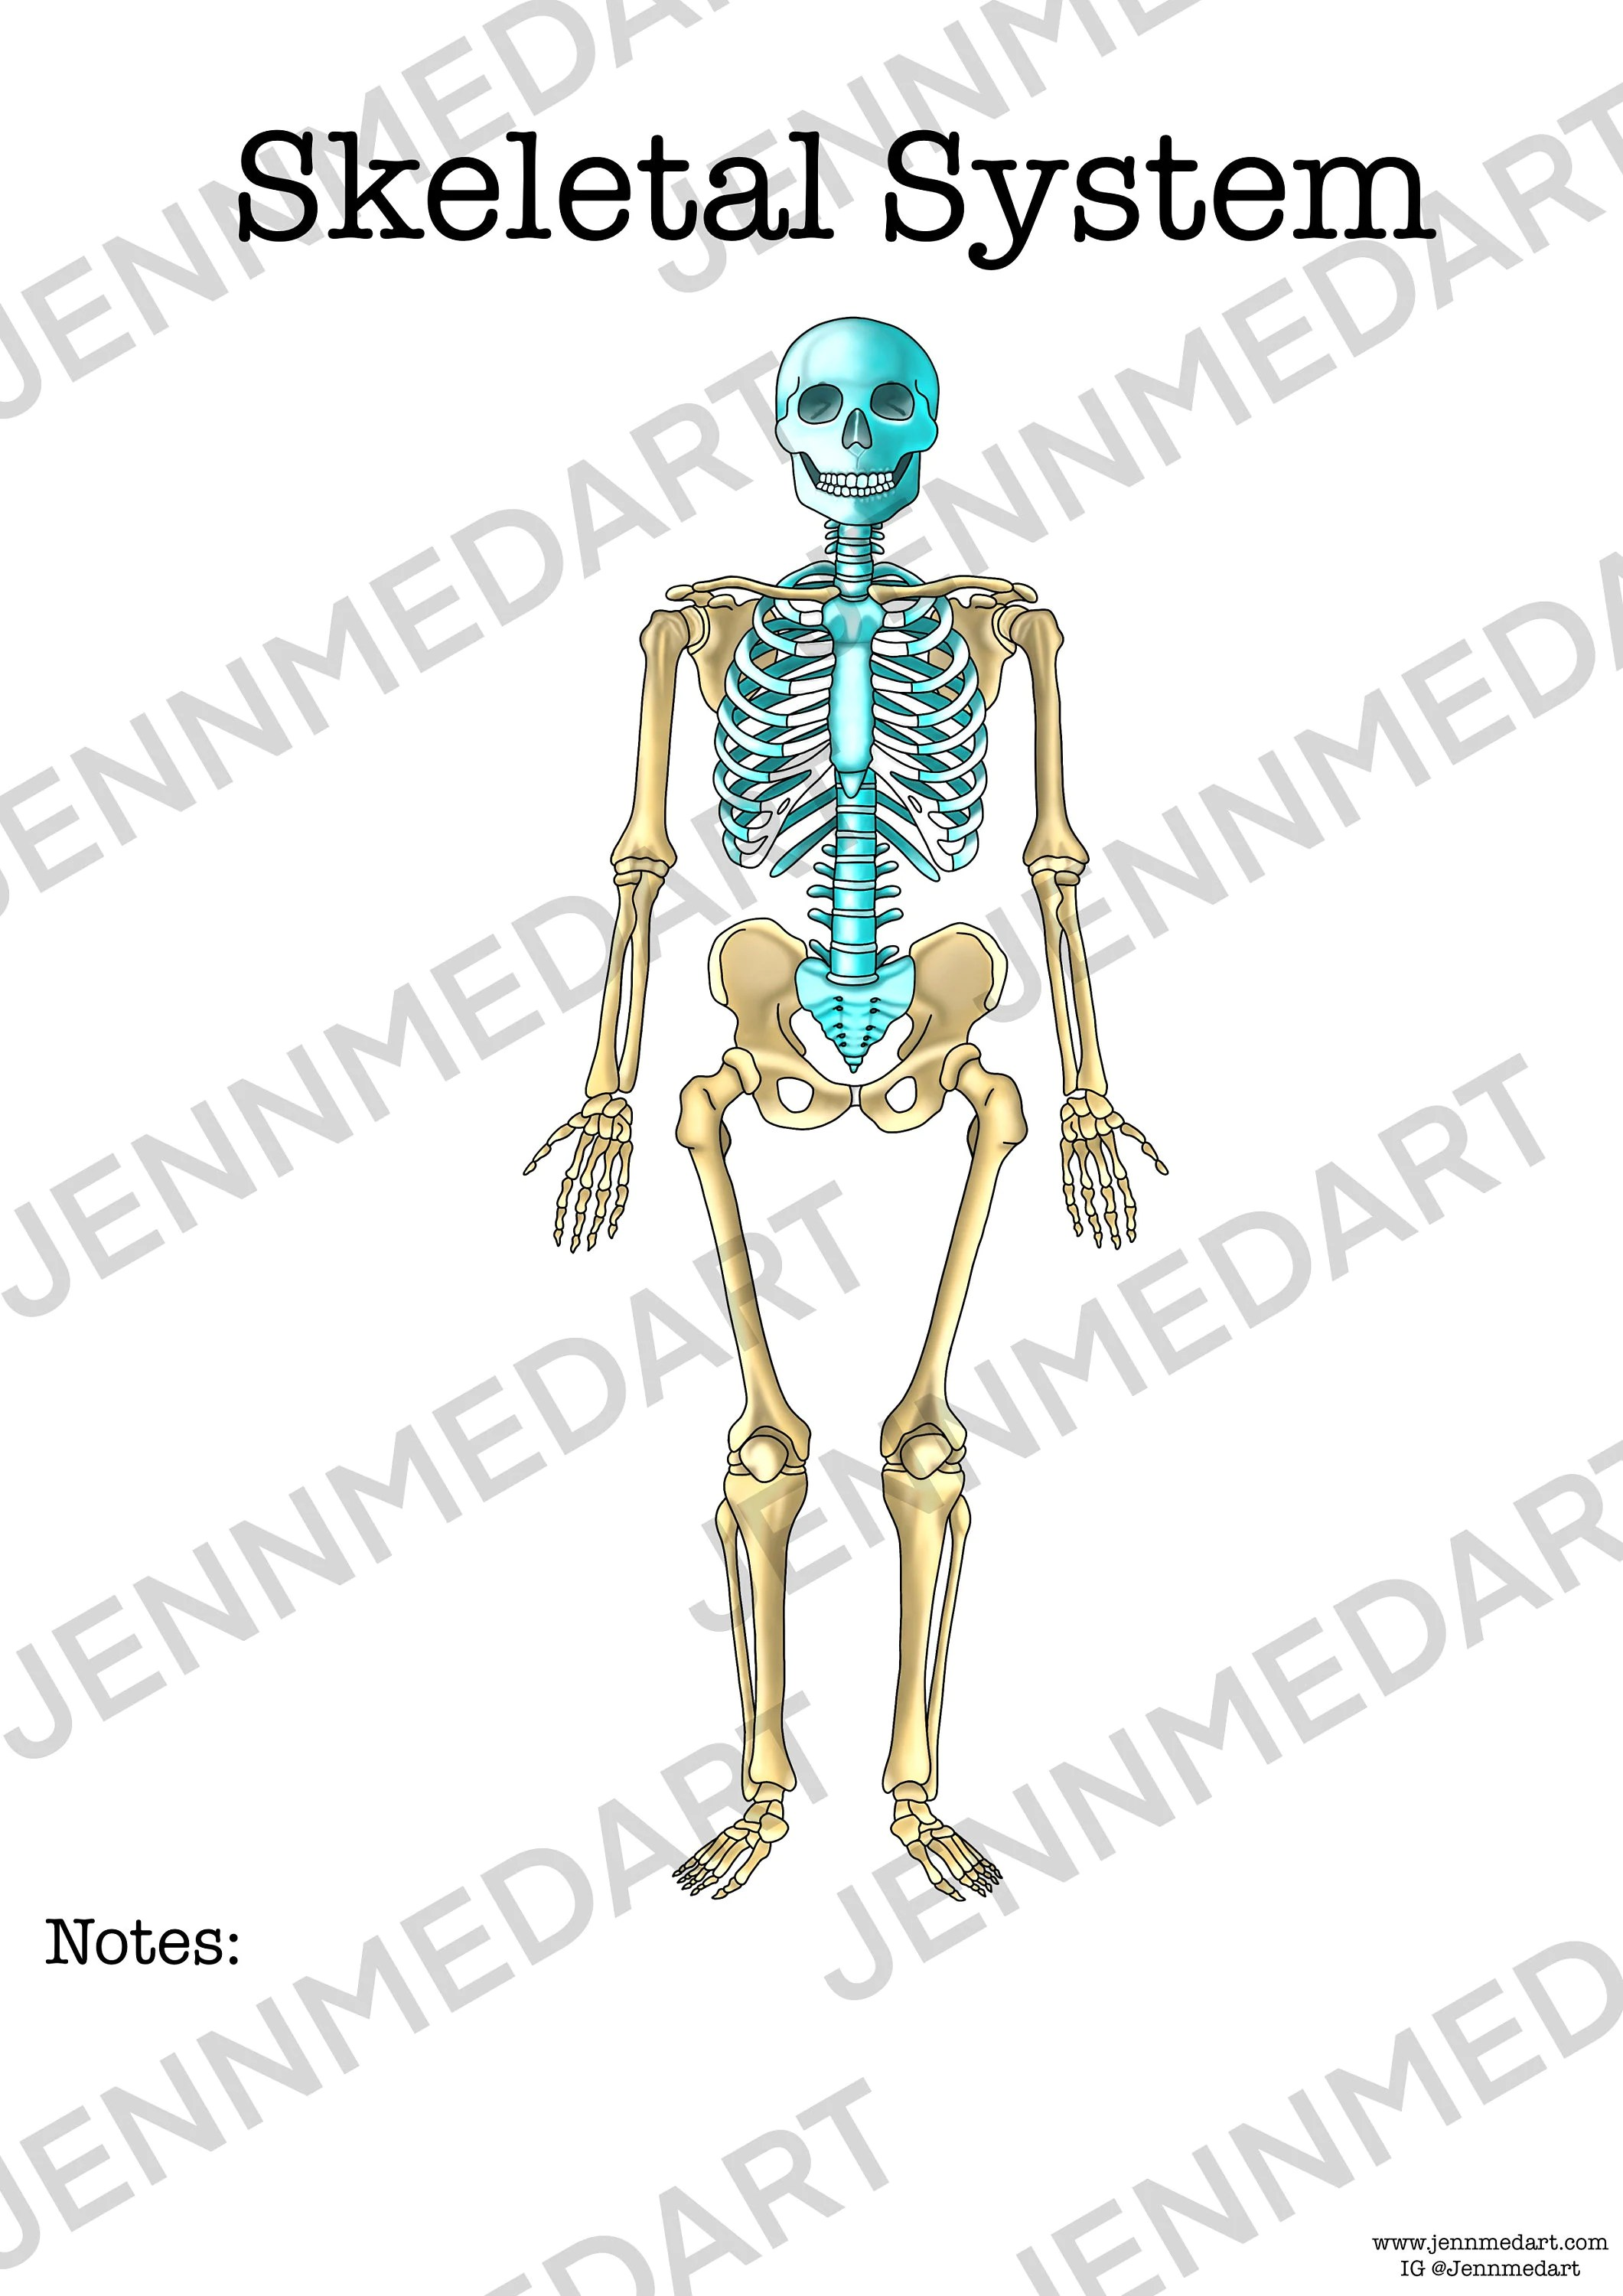 Skeletal System Anatomy Worksheet 3 In 1 Set A Labeled